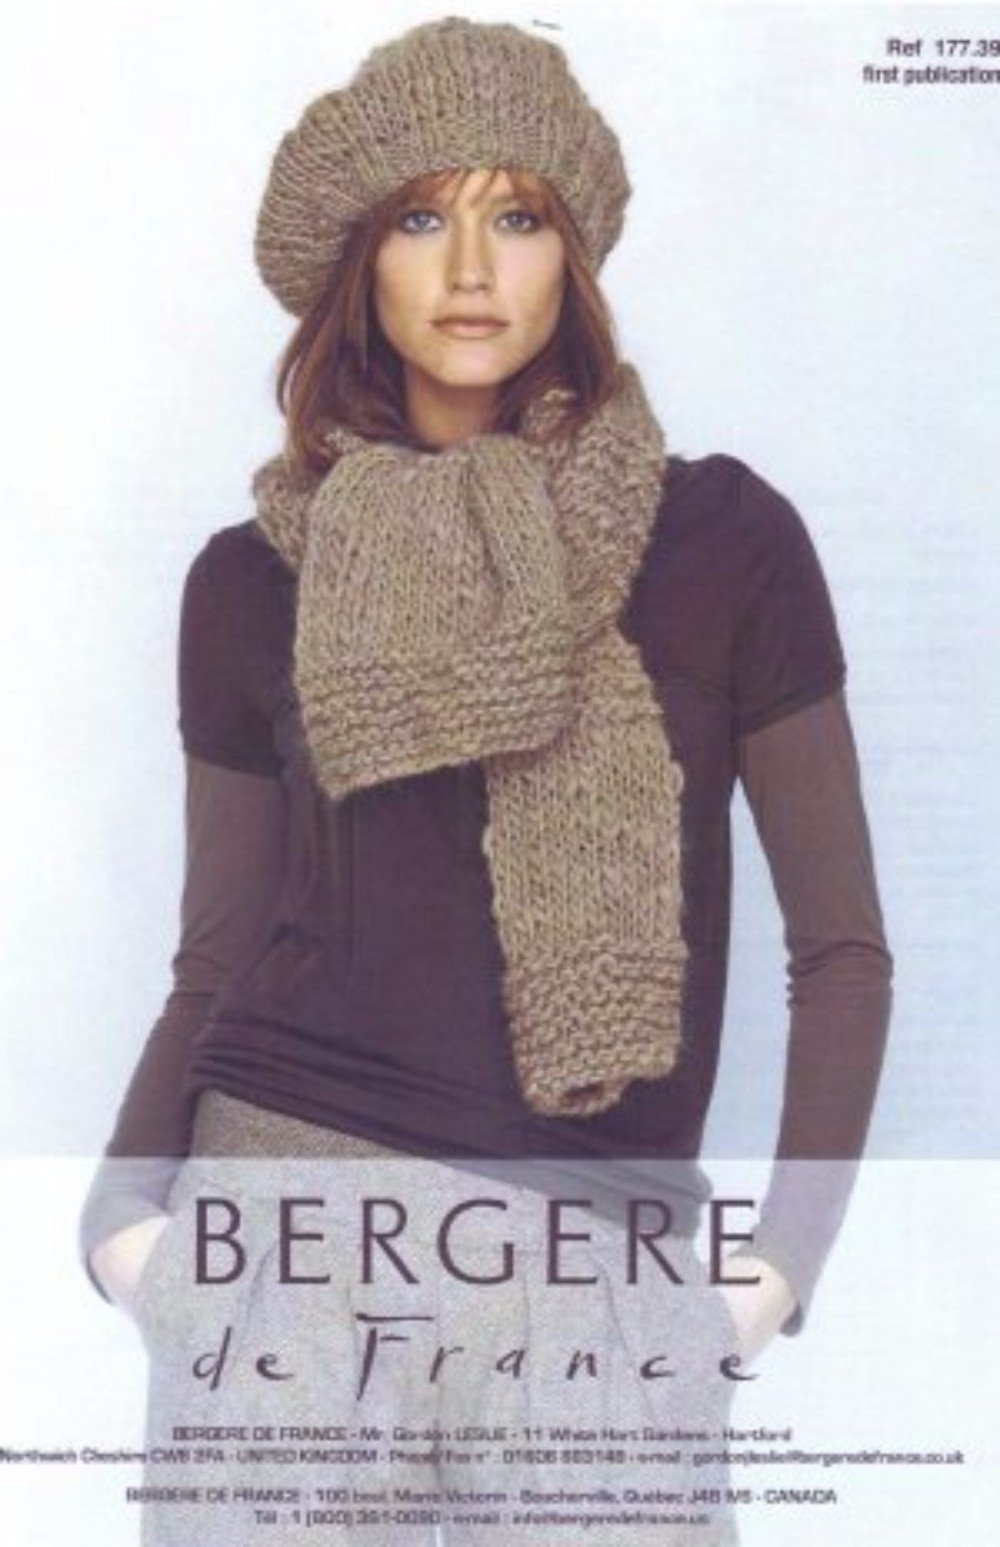 Scarf and Beret by Bergere de France